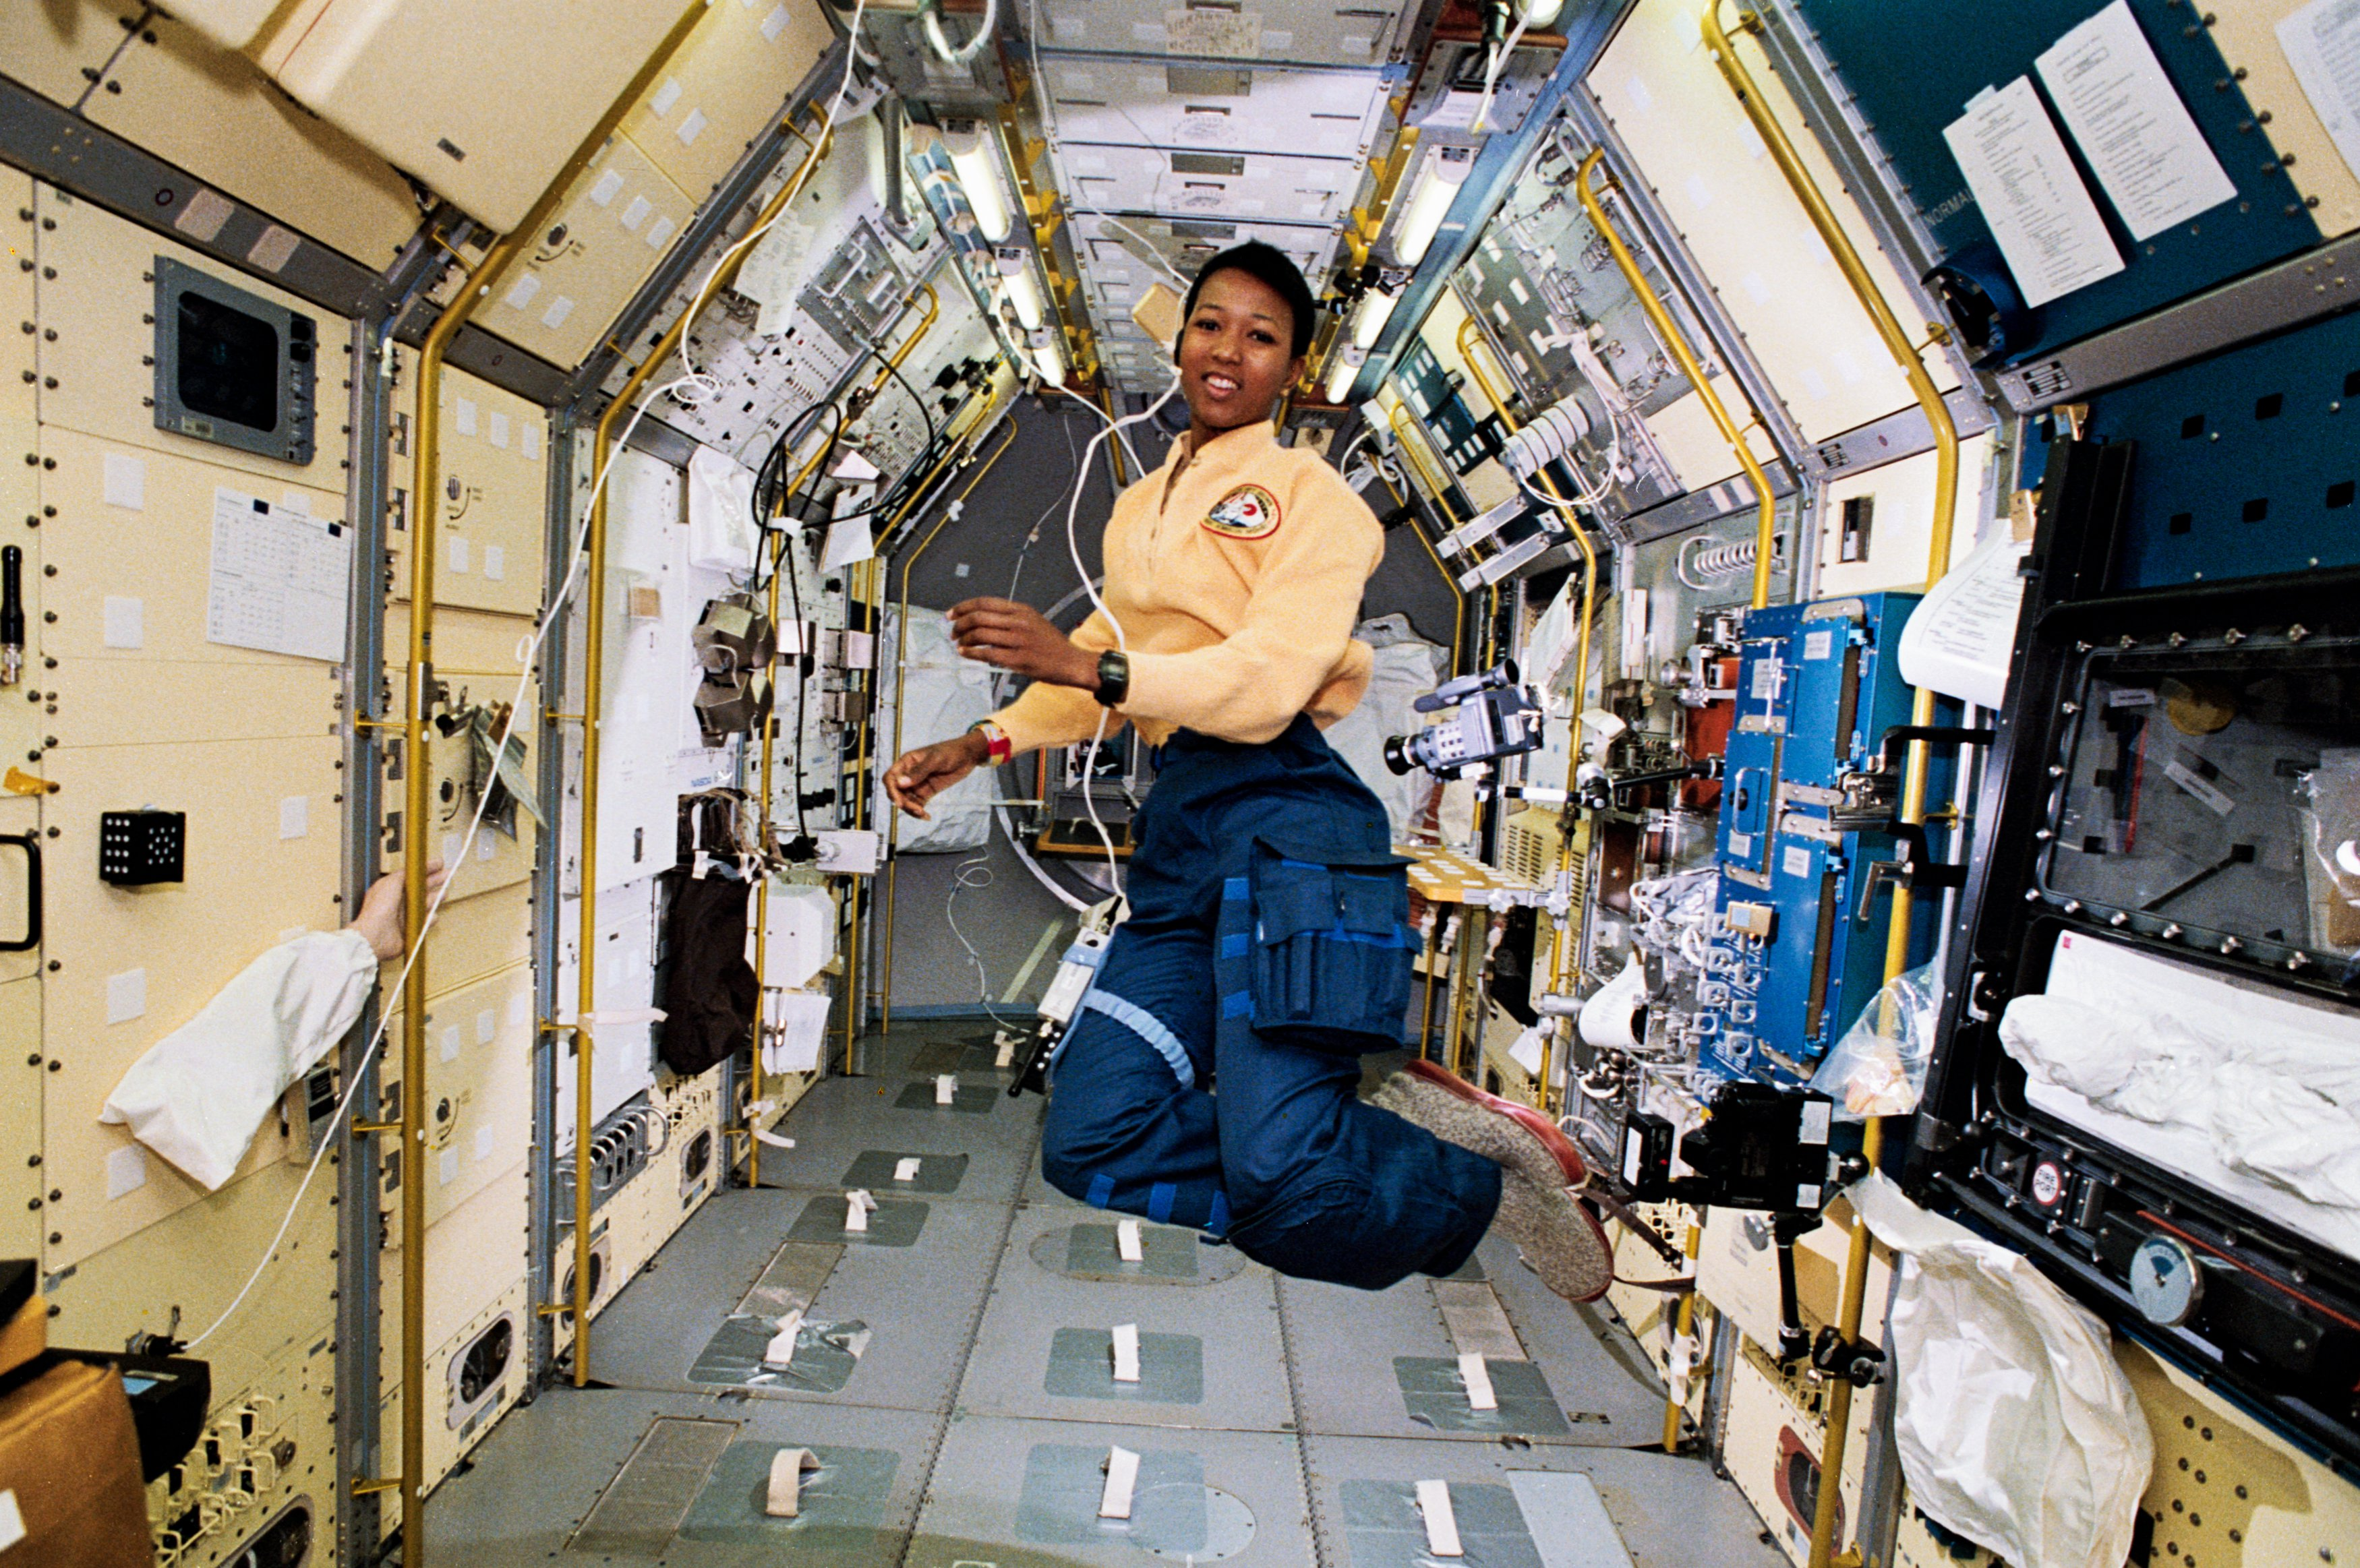 Mae_Jemison_in_Space.jpg